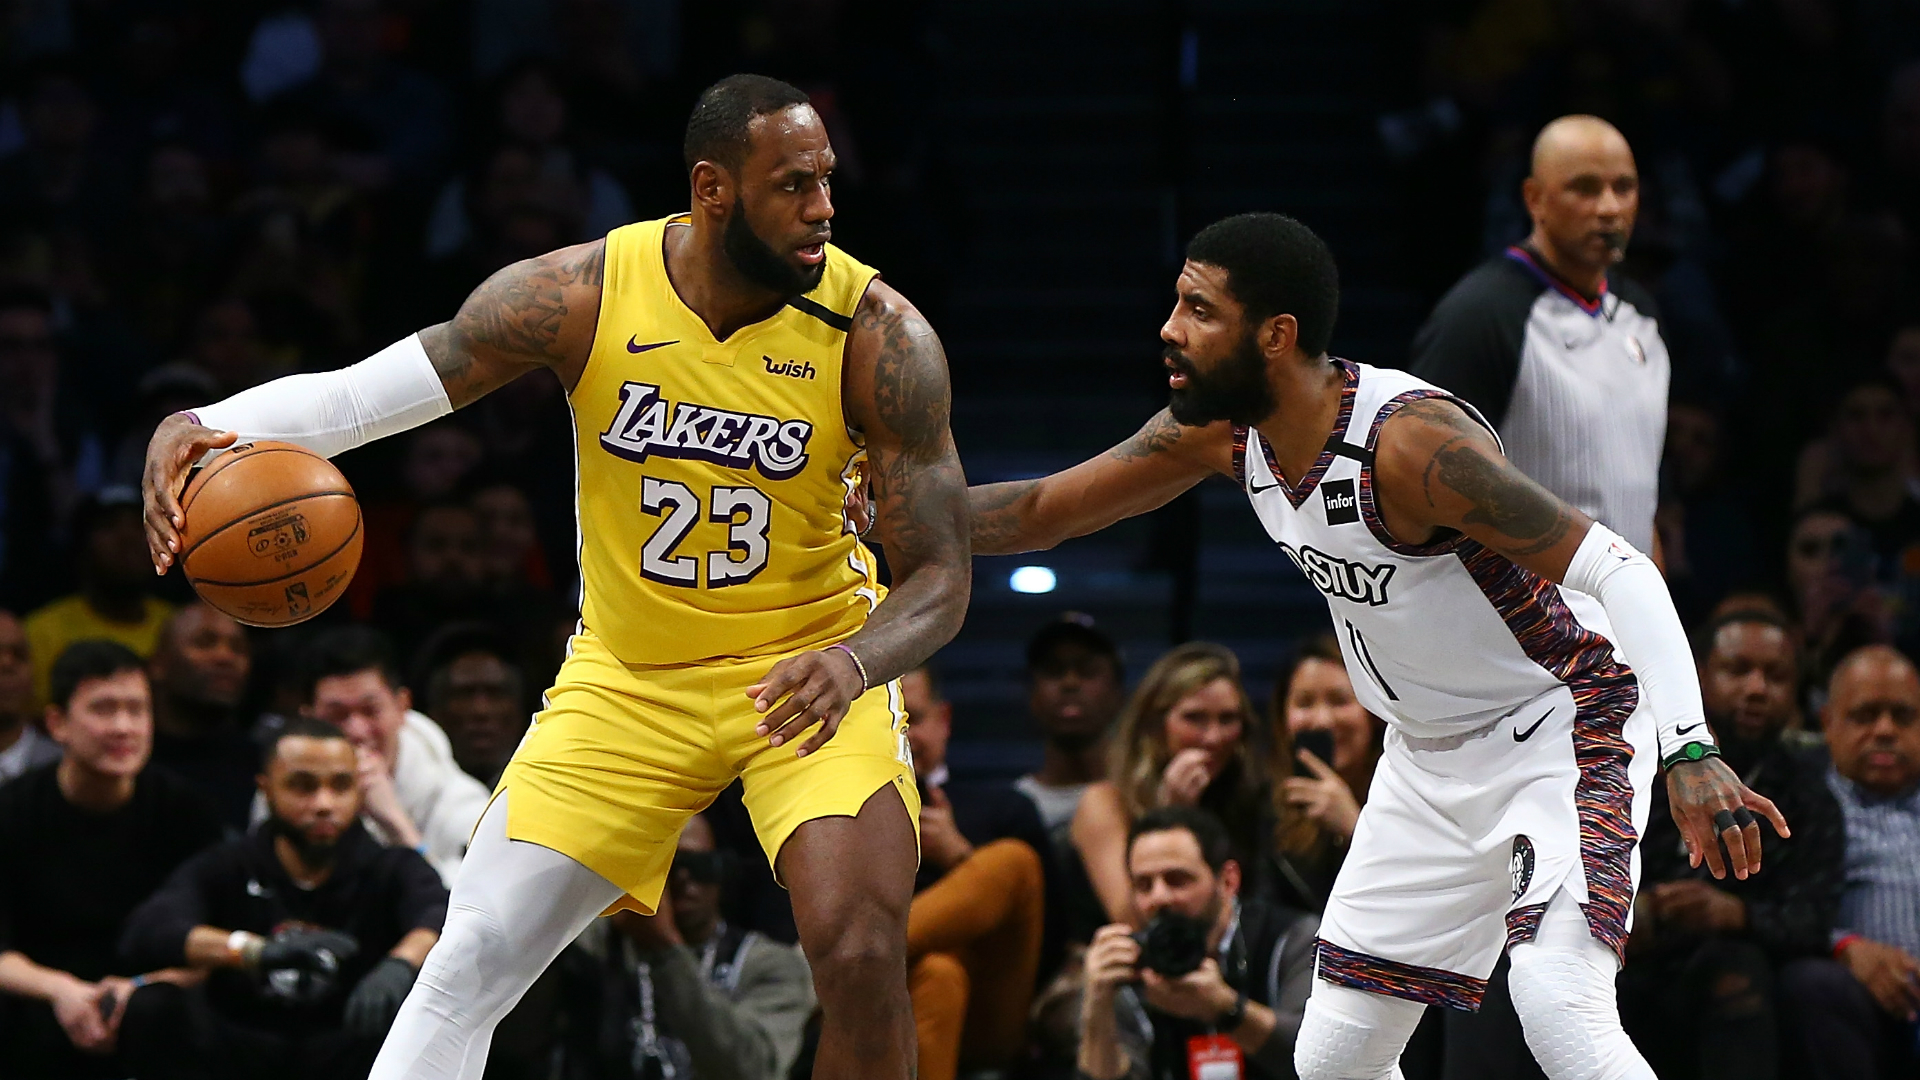 LeBron James outshone Kyrie Irving in Thursday's NBA action, while Luka Doncic and Damian Lillard put on a show in Portland.